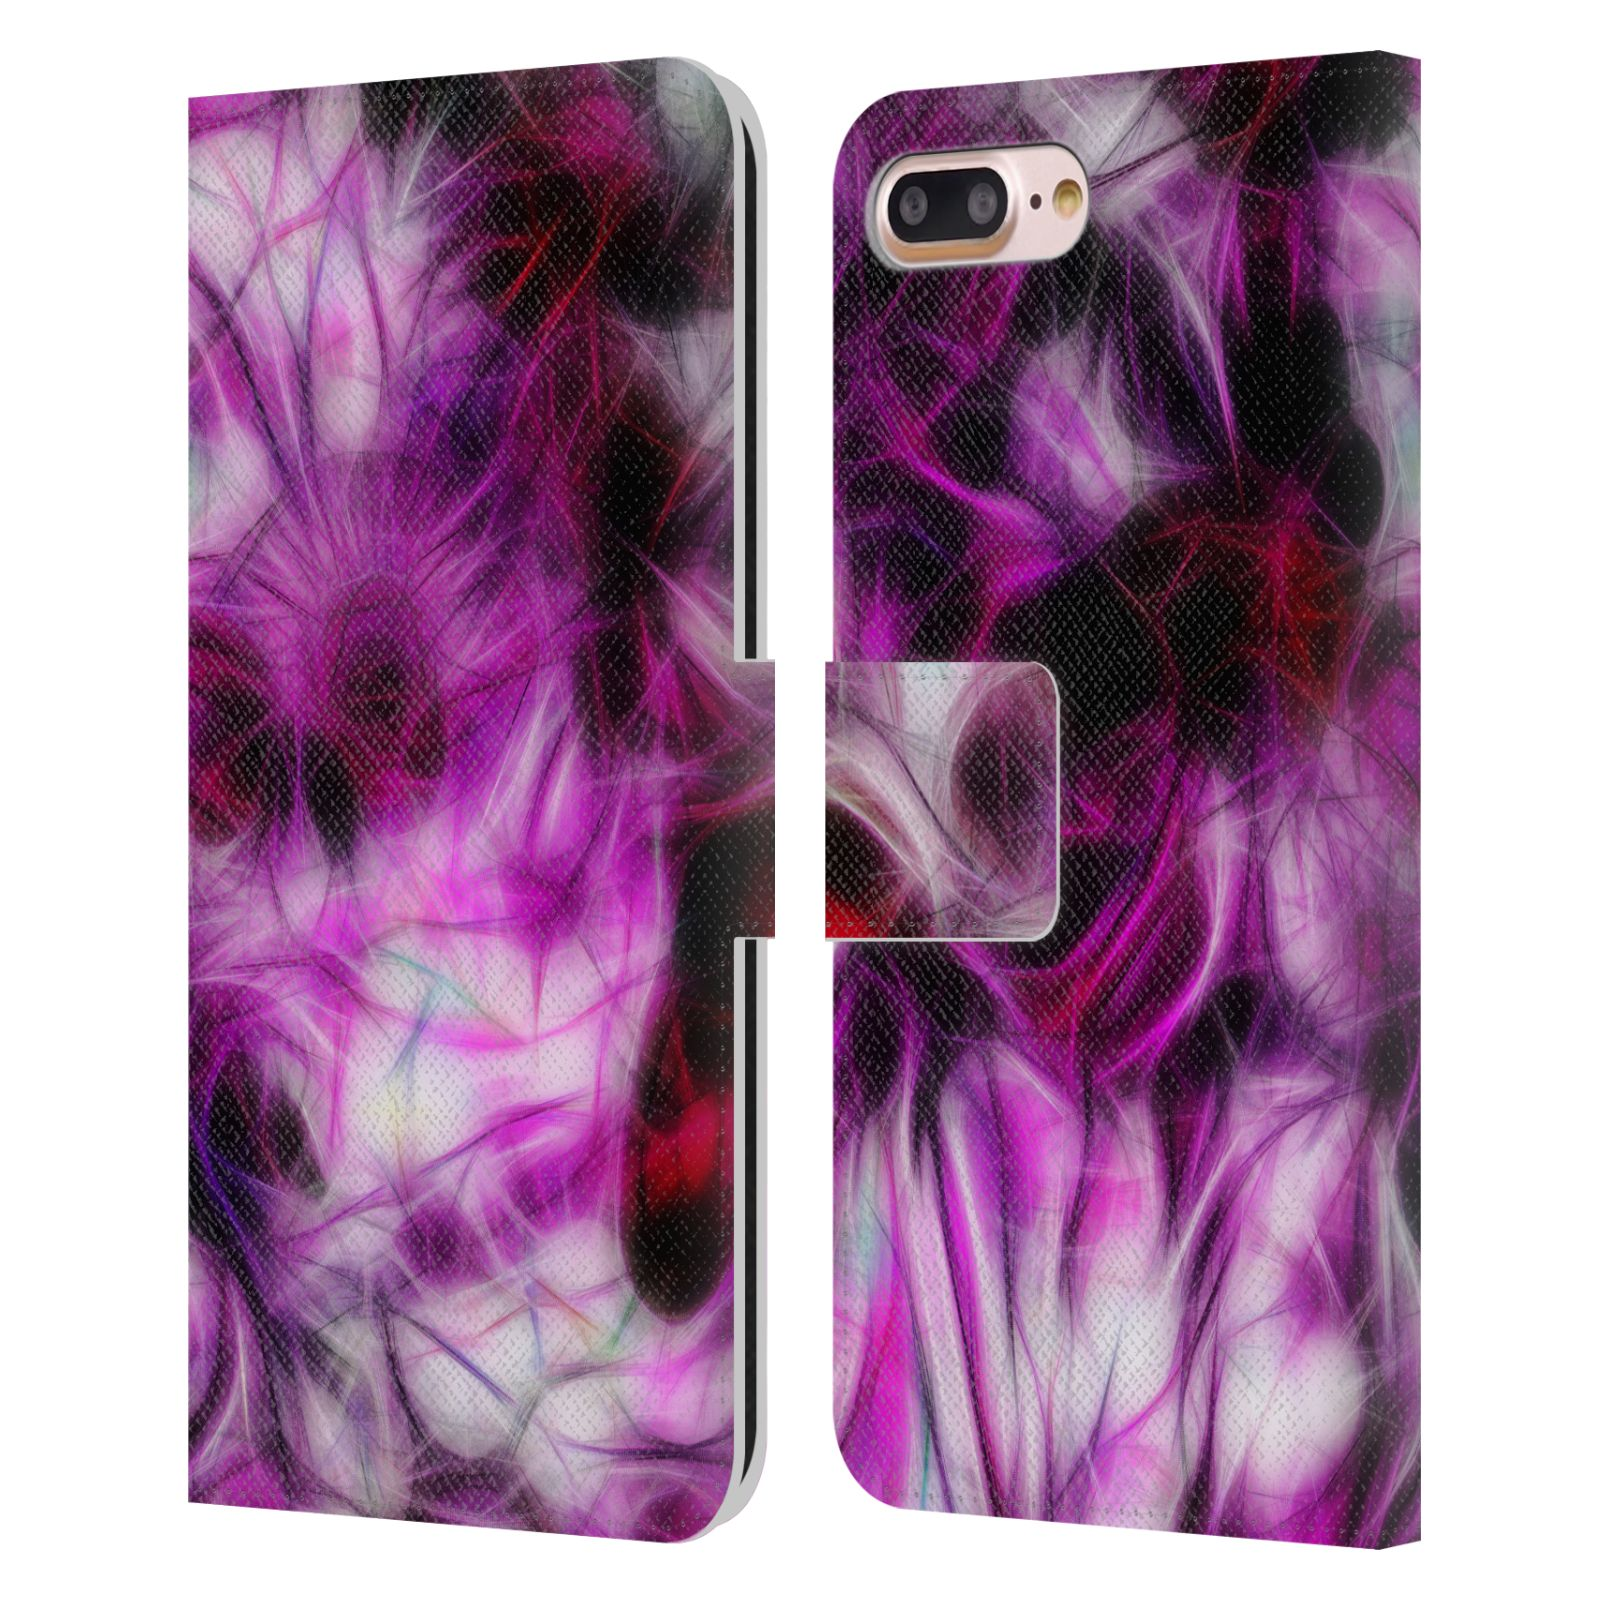 OFFICIAL-HAROULITA-ULTRA-VIOLET-INK-LEATHER-BOOK-CASE-FOR-APPLE-iPHONE-PHONES